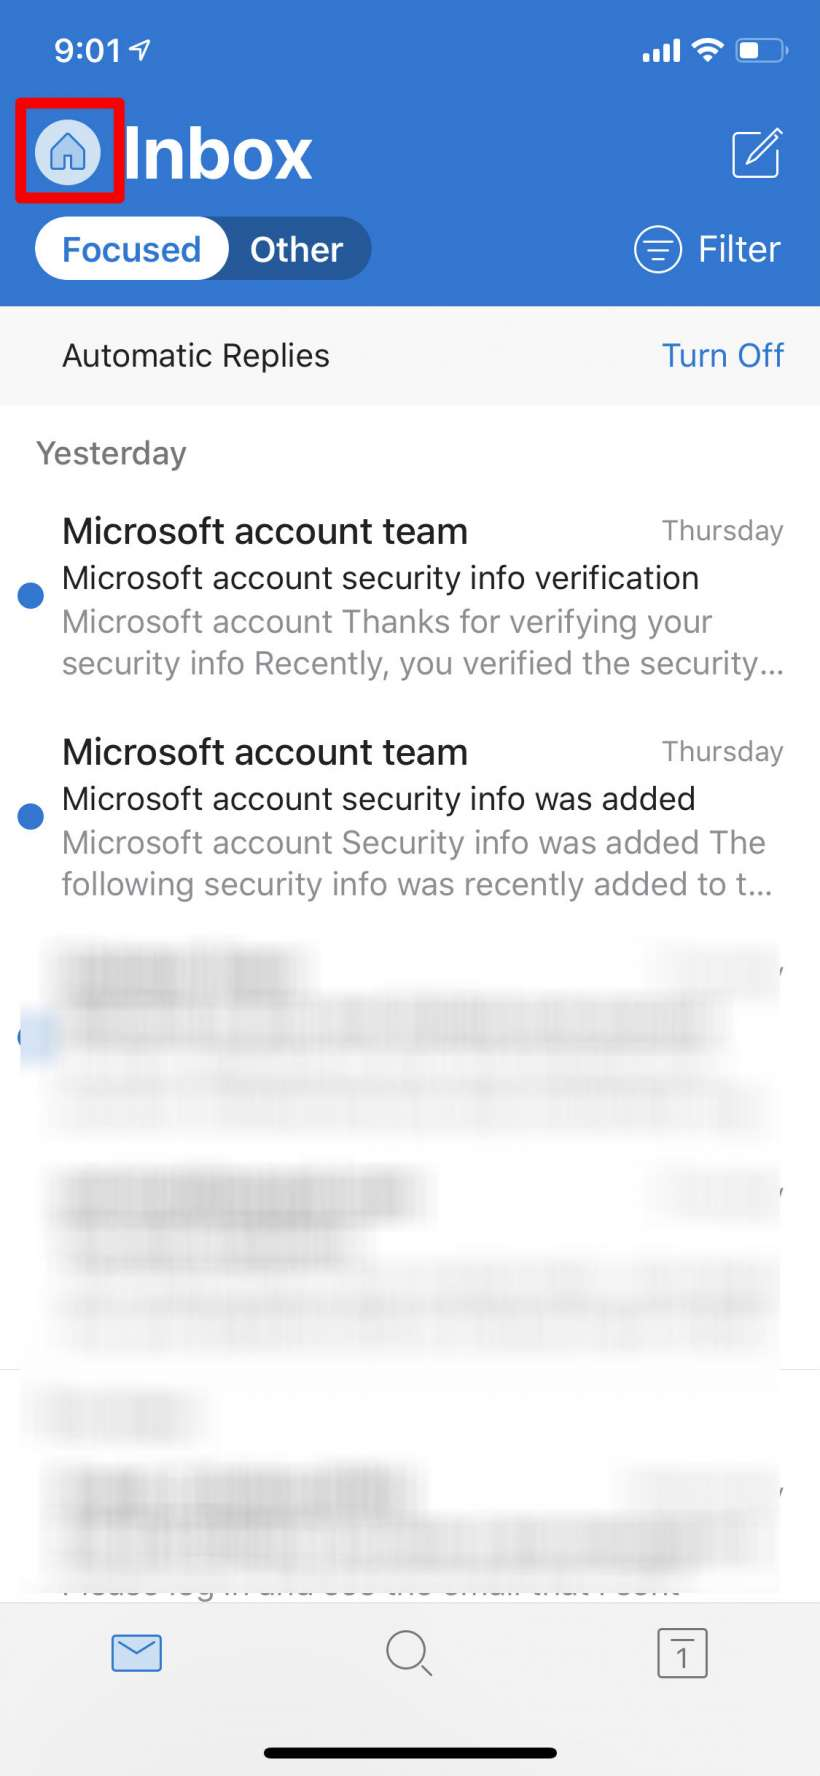 How to set up an out-of-office reply for Outlook on iPhone, iPad and Mac.